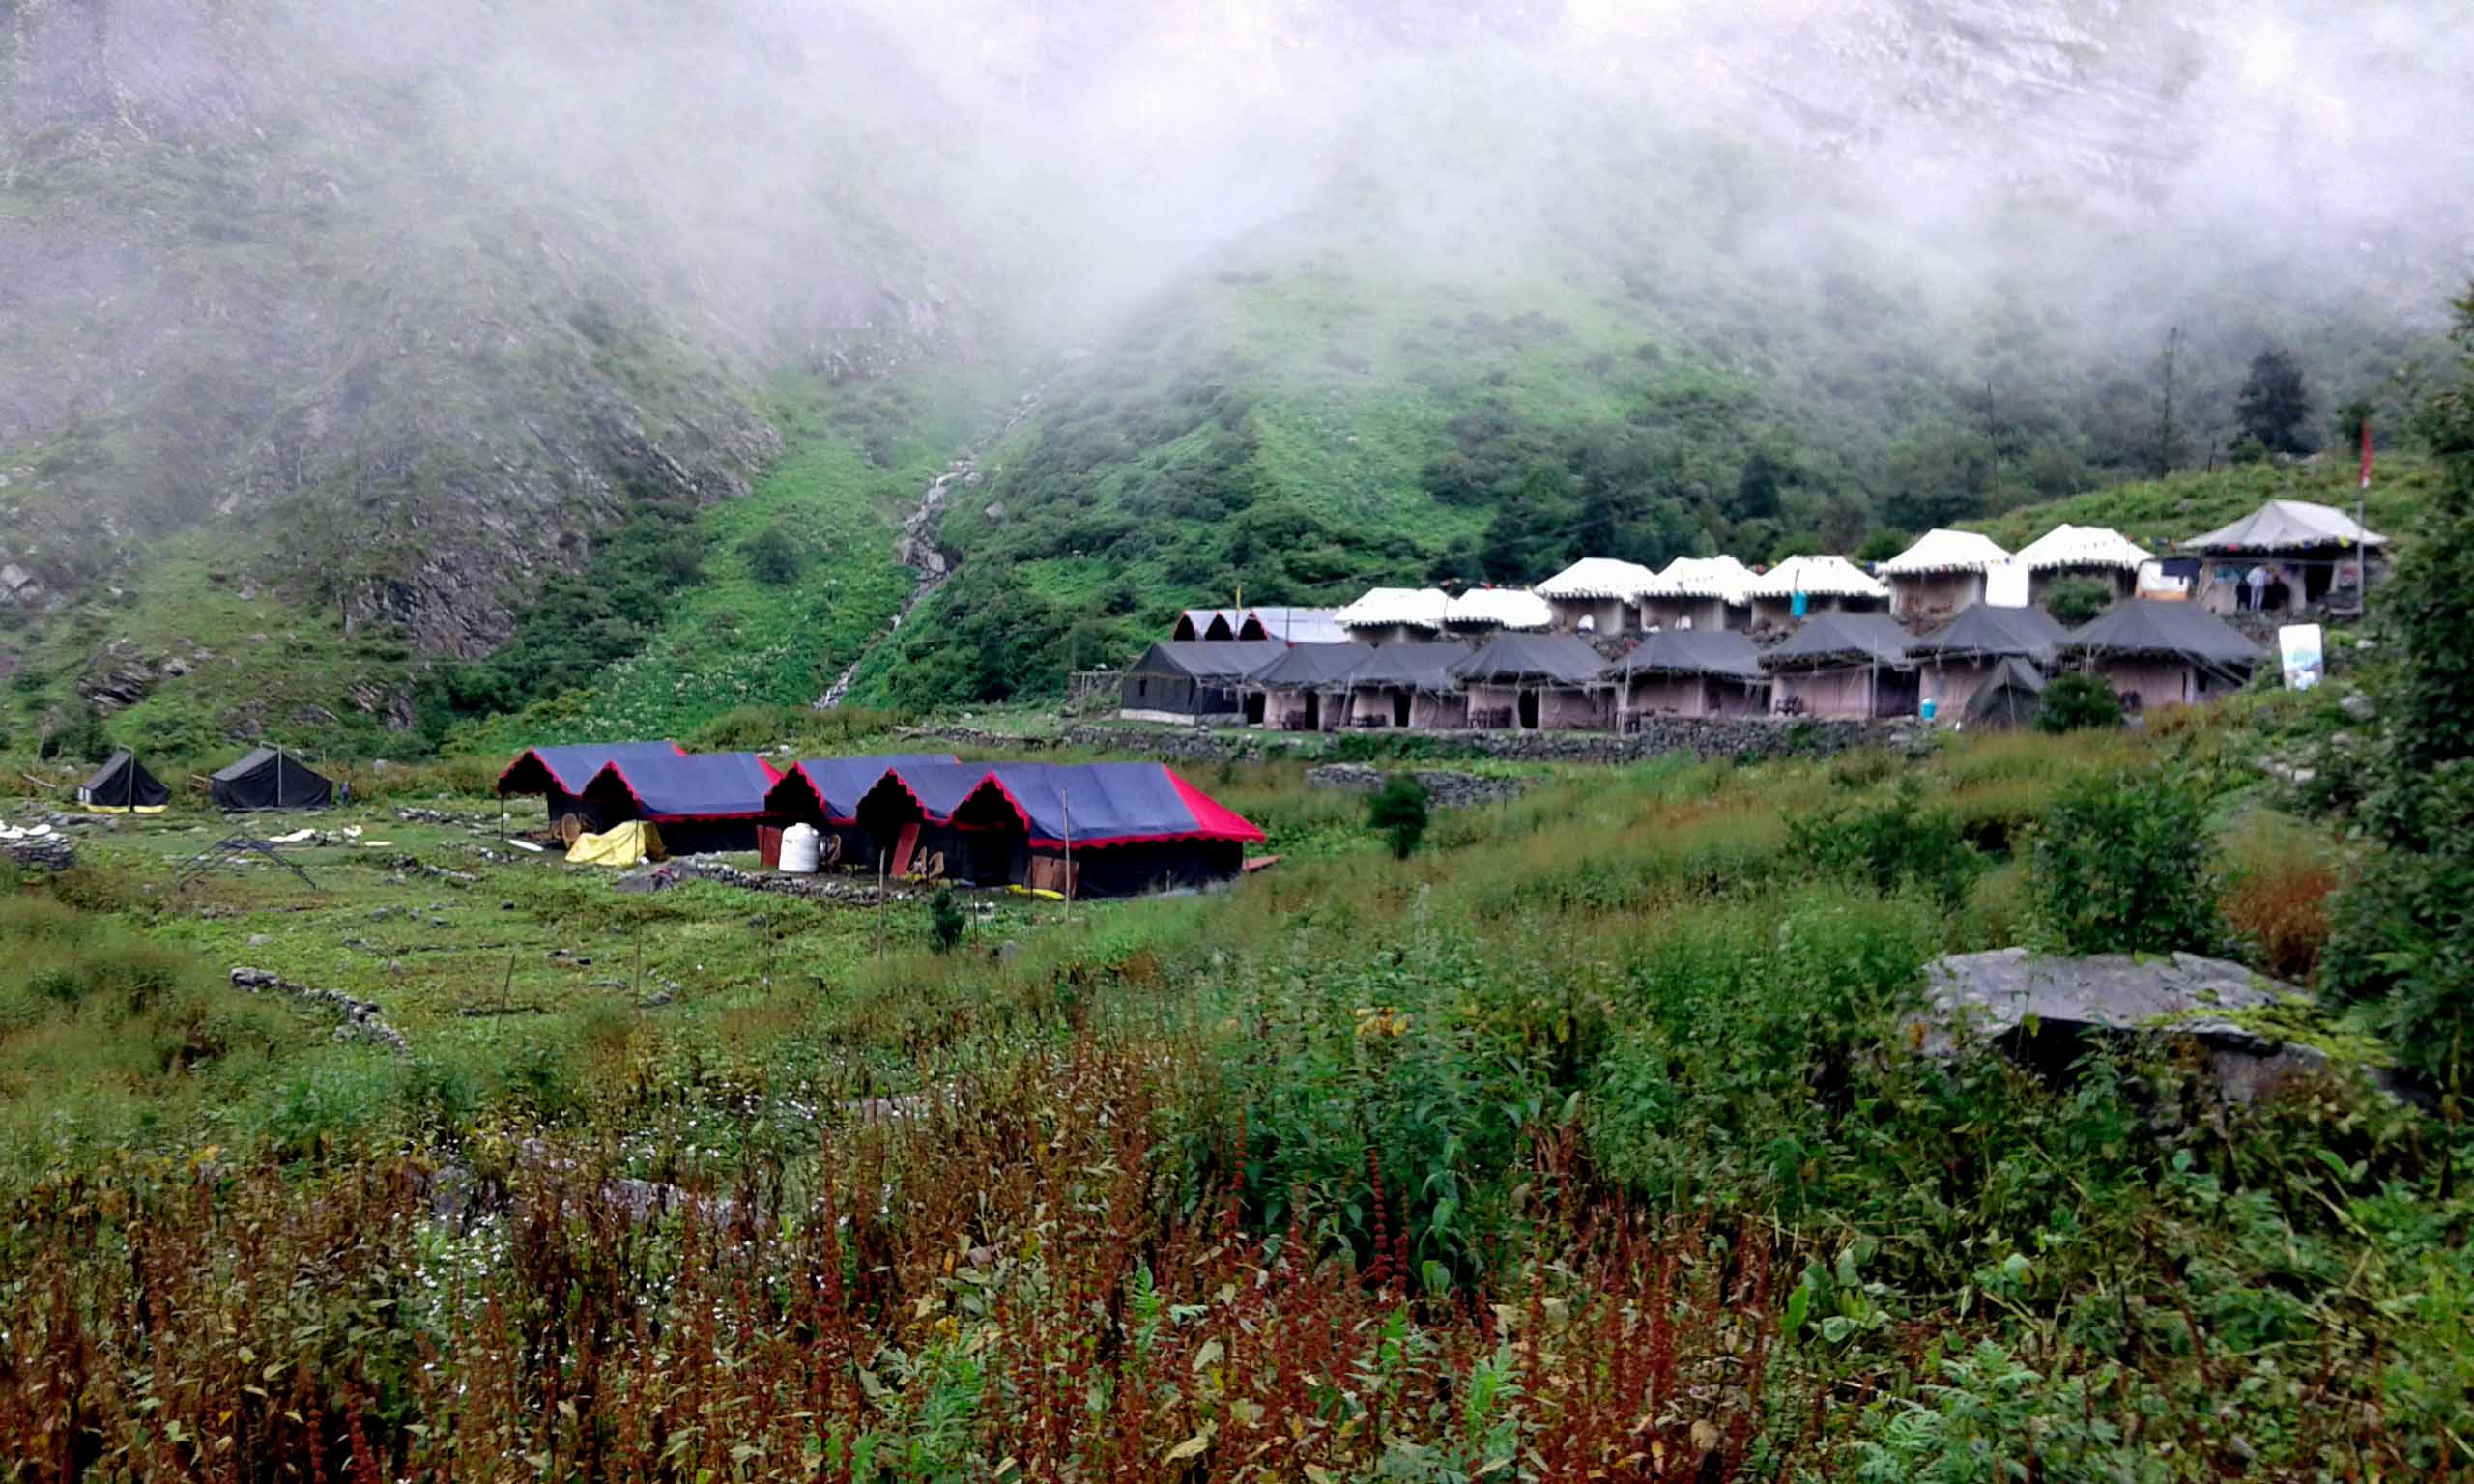 beutiful-view-of-tent-in-ghaghariya-uttarakhand-copy-copy